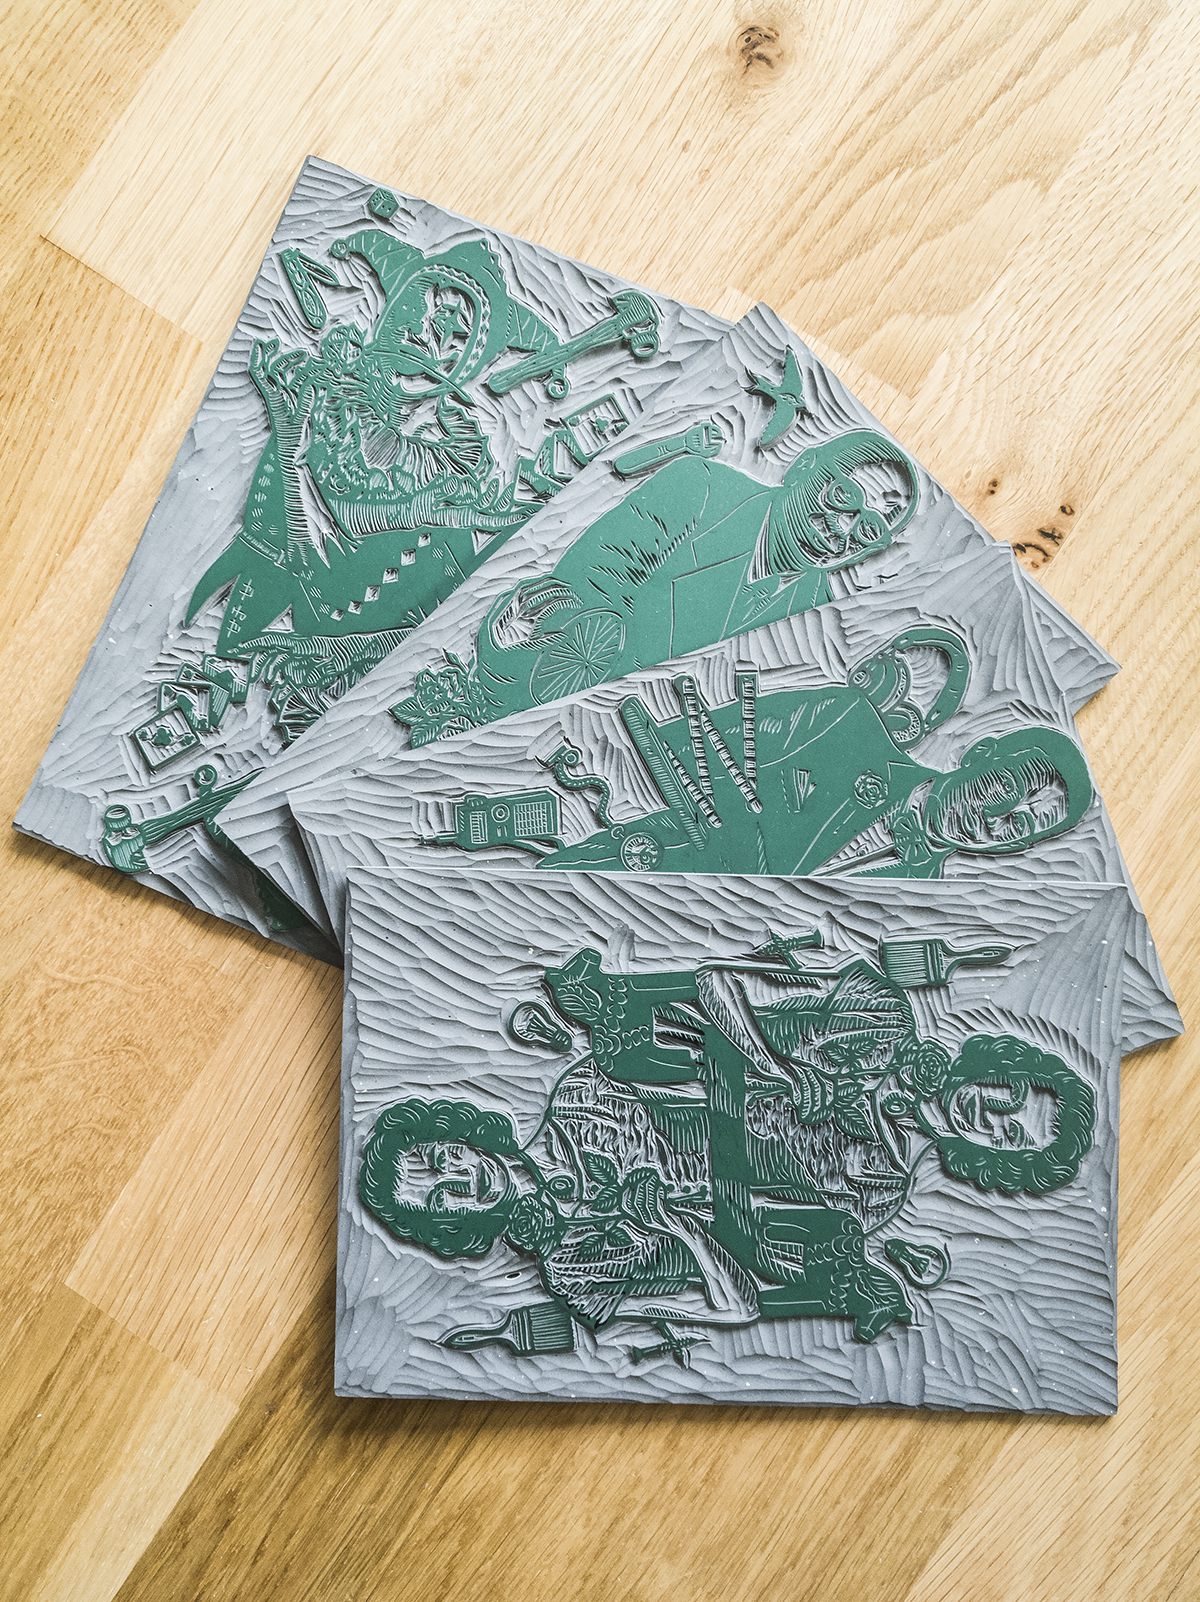 The designs are hand-carved on Japanese vinyl sheets.